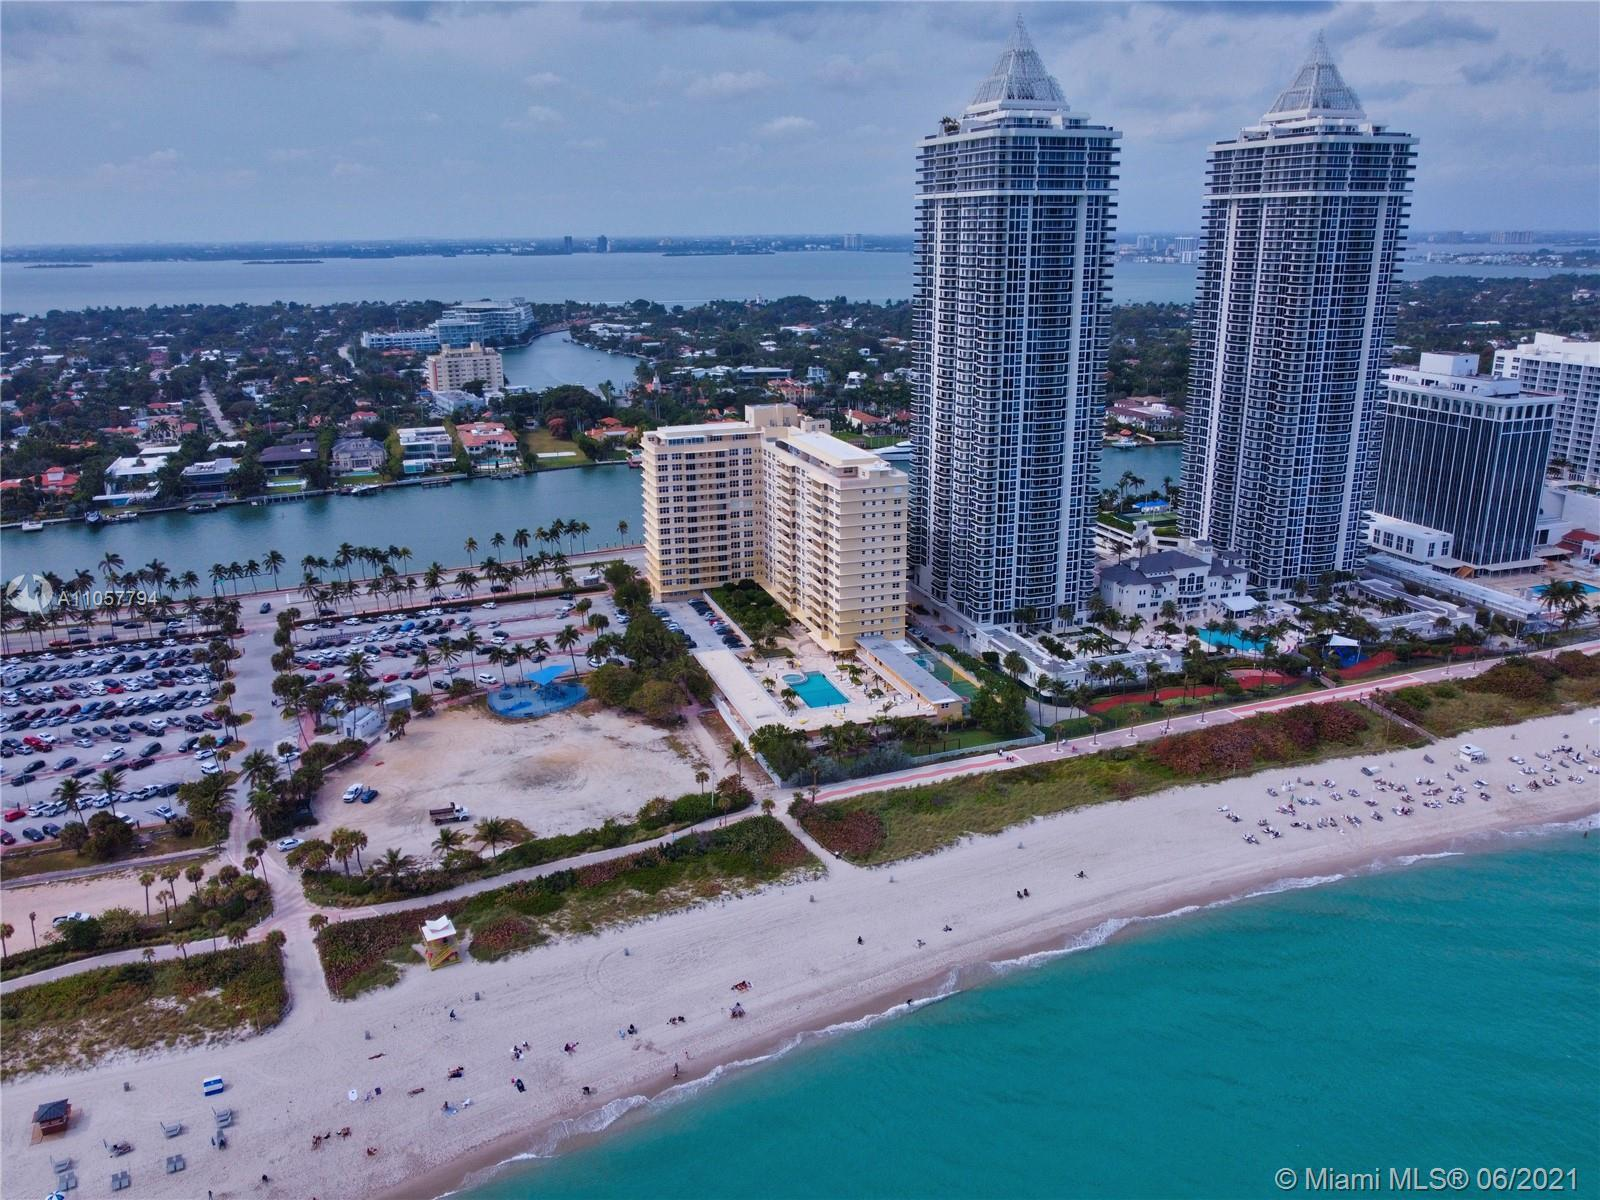 Beautiful apartment 1 bed + den/office legal with permits approved by the City of Miami Beach. Fully